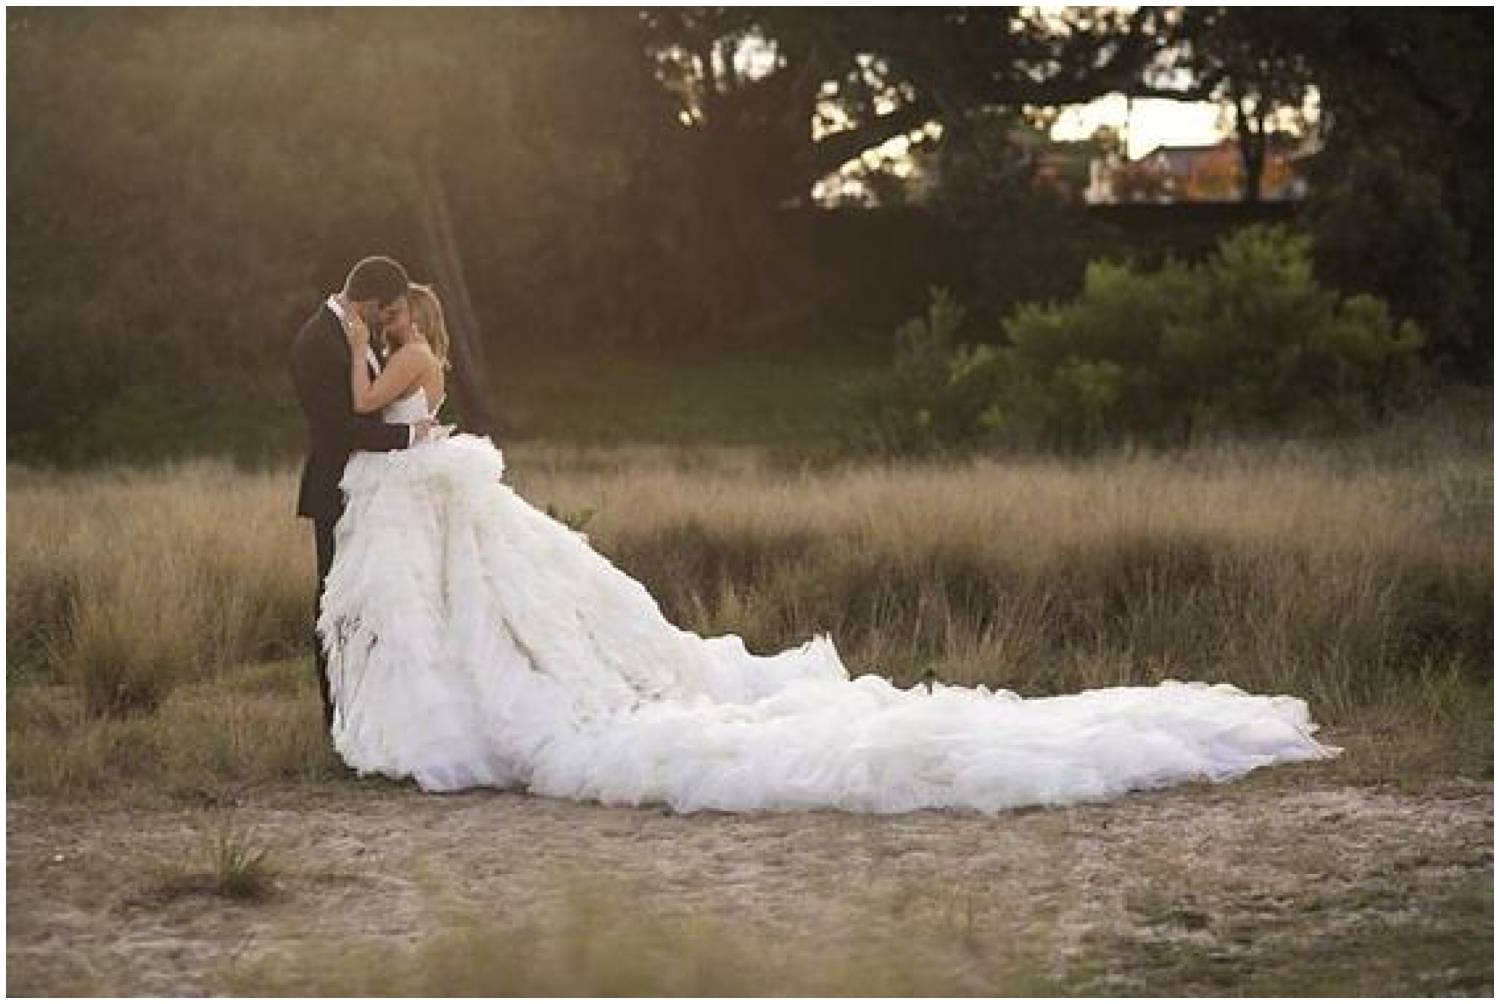 Classic, Glamorous Wedding | Photo by  Blumenthal Photography  | Dress by  George Elsissa | As seen on  ModWedding